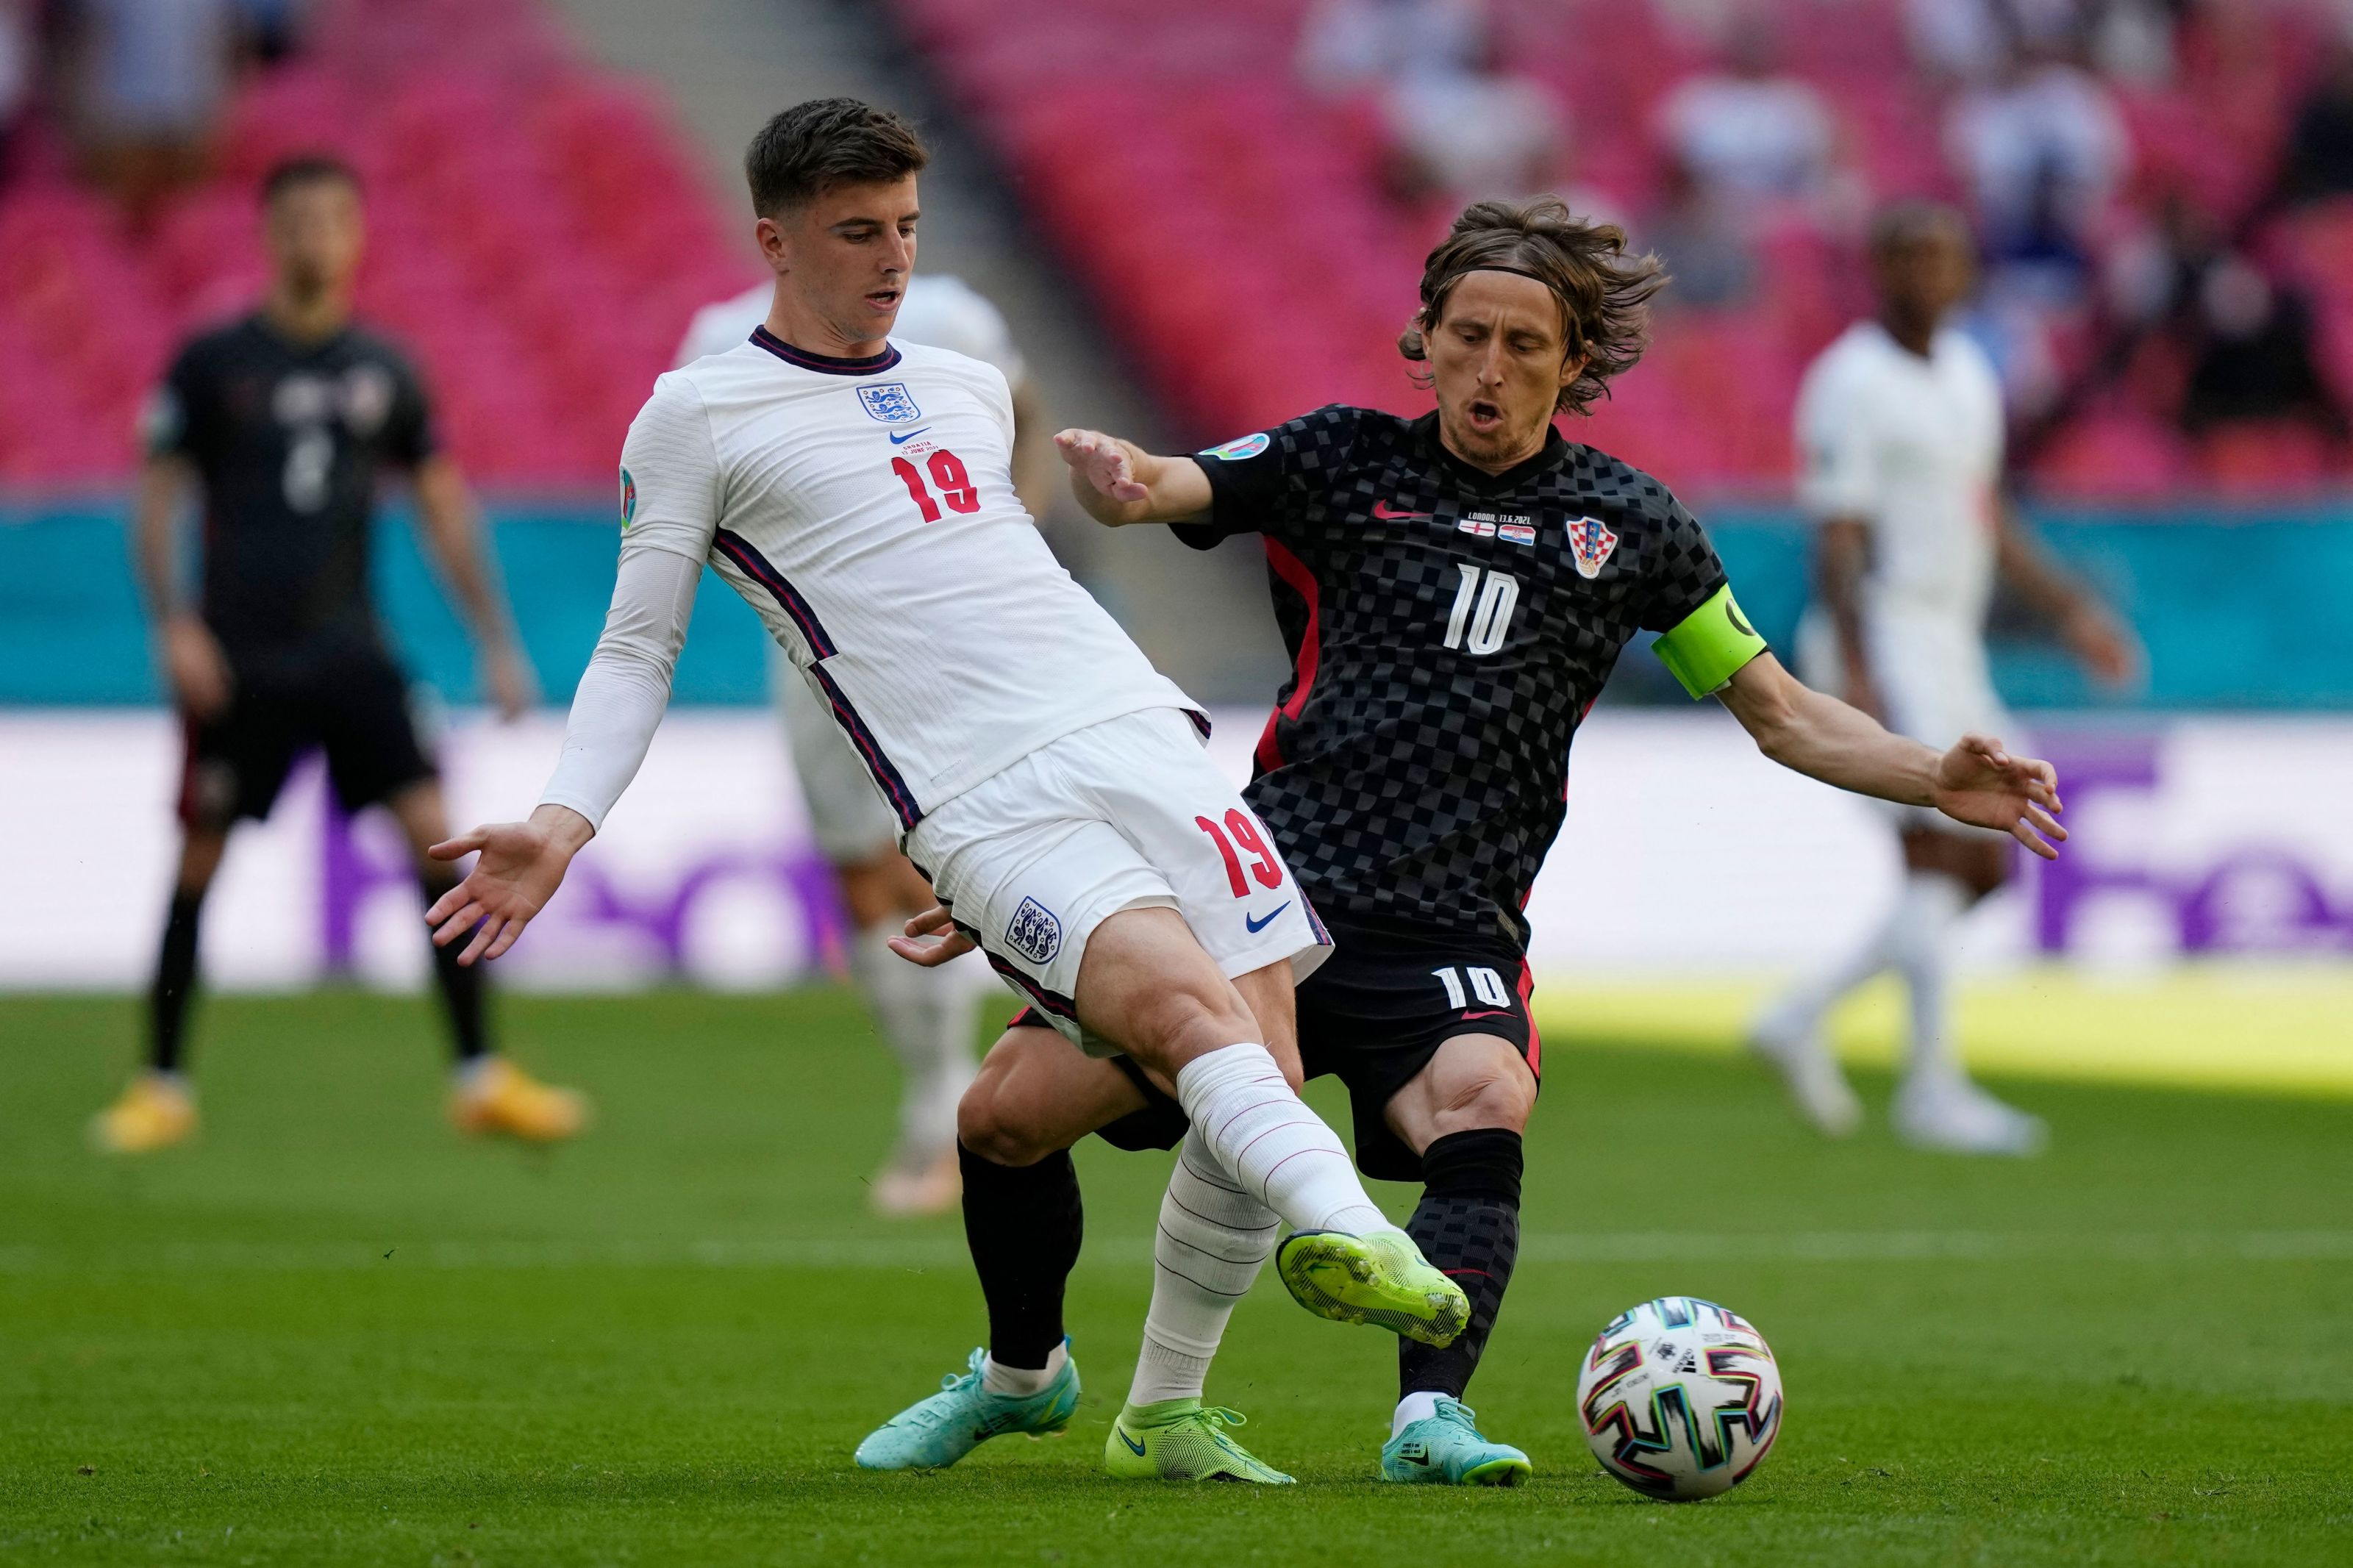 Chelsea's Mason Mount shines in Euro debut with England